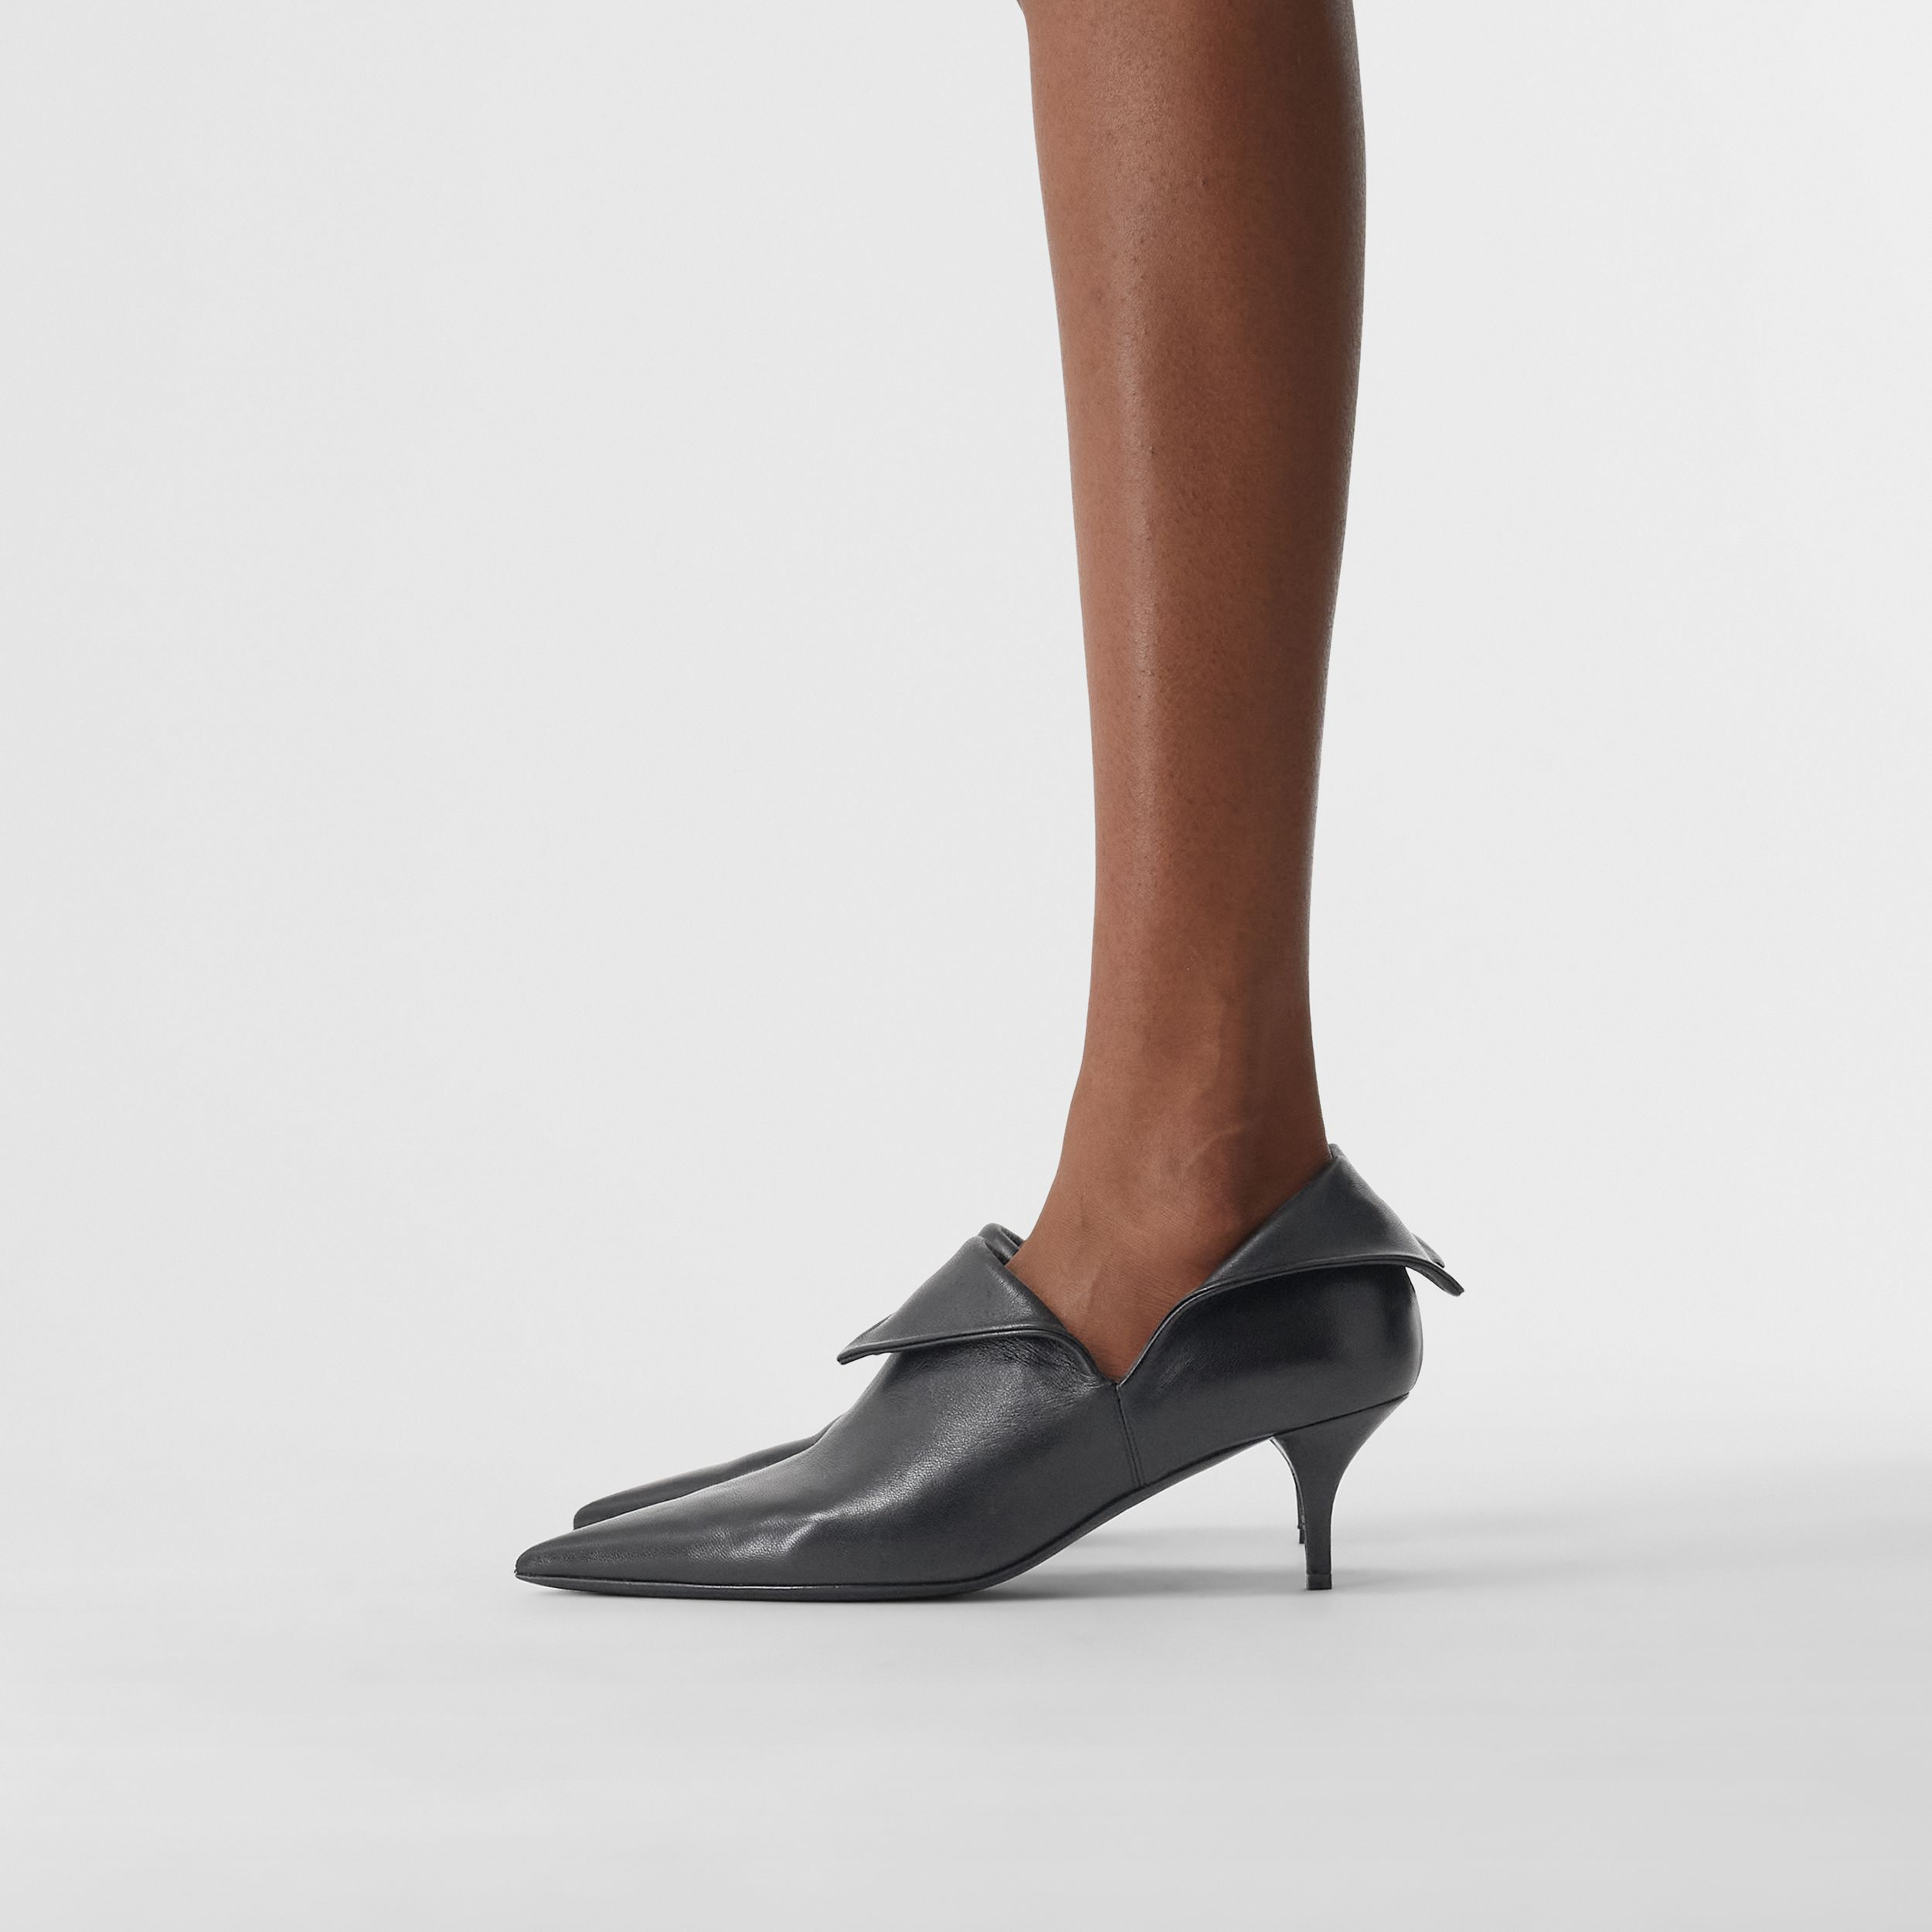 Lambskin Foldover Point-toe Pumps in Black - Women | Burberry - 3